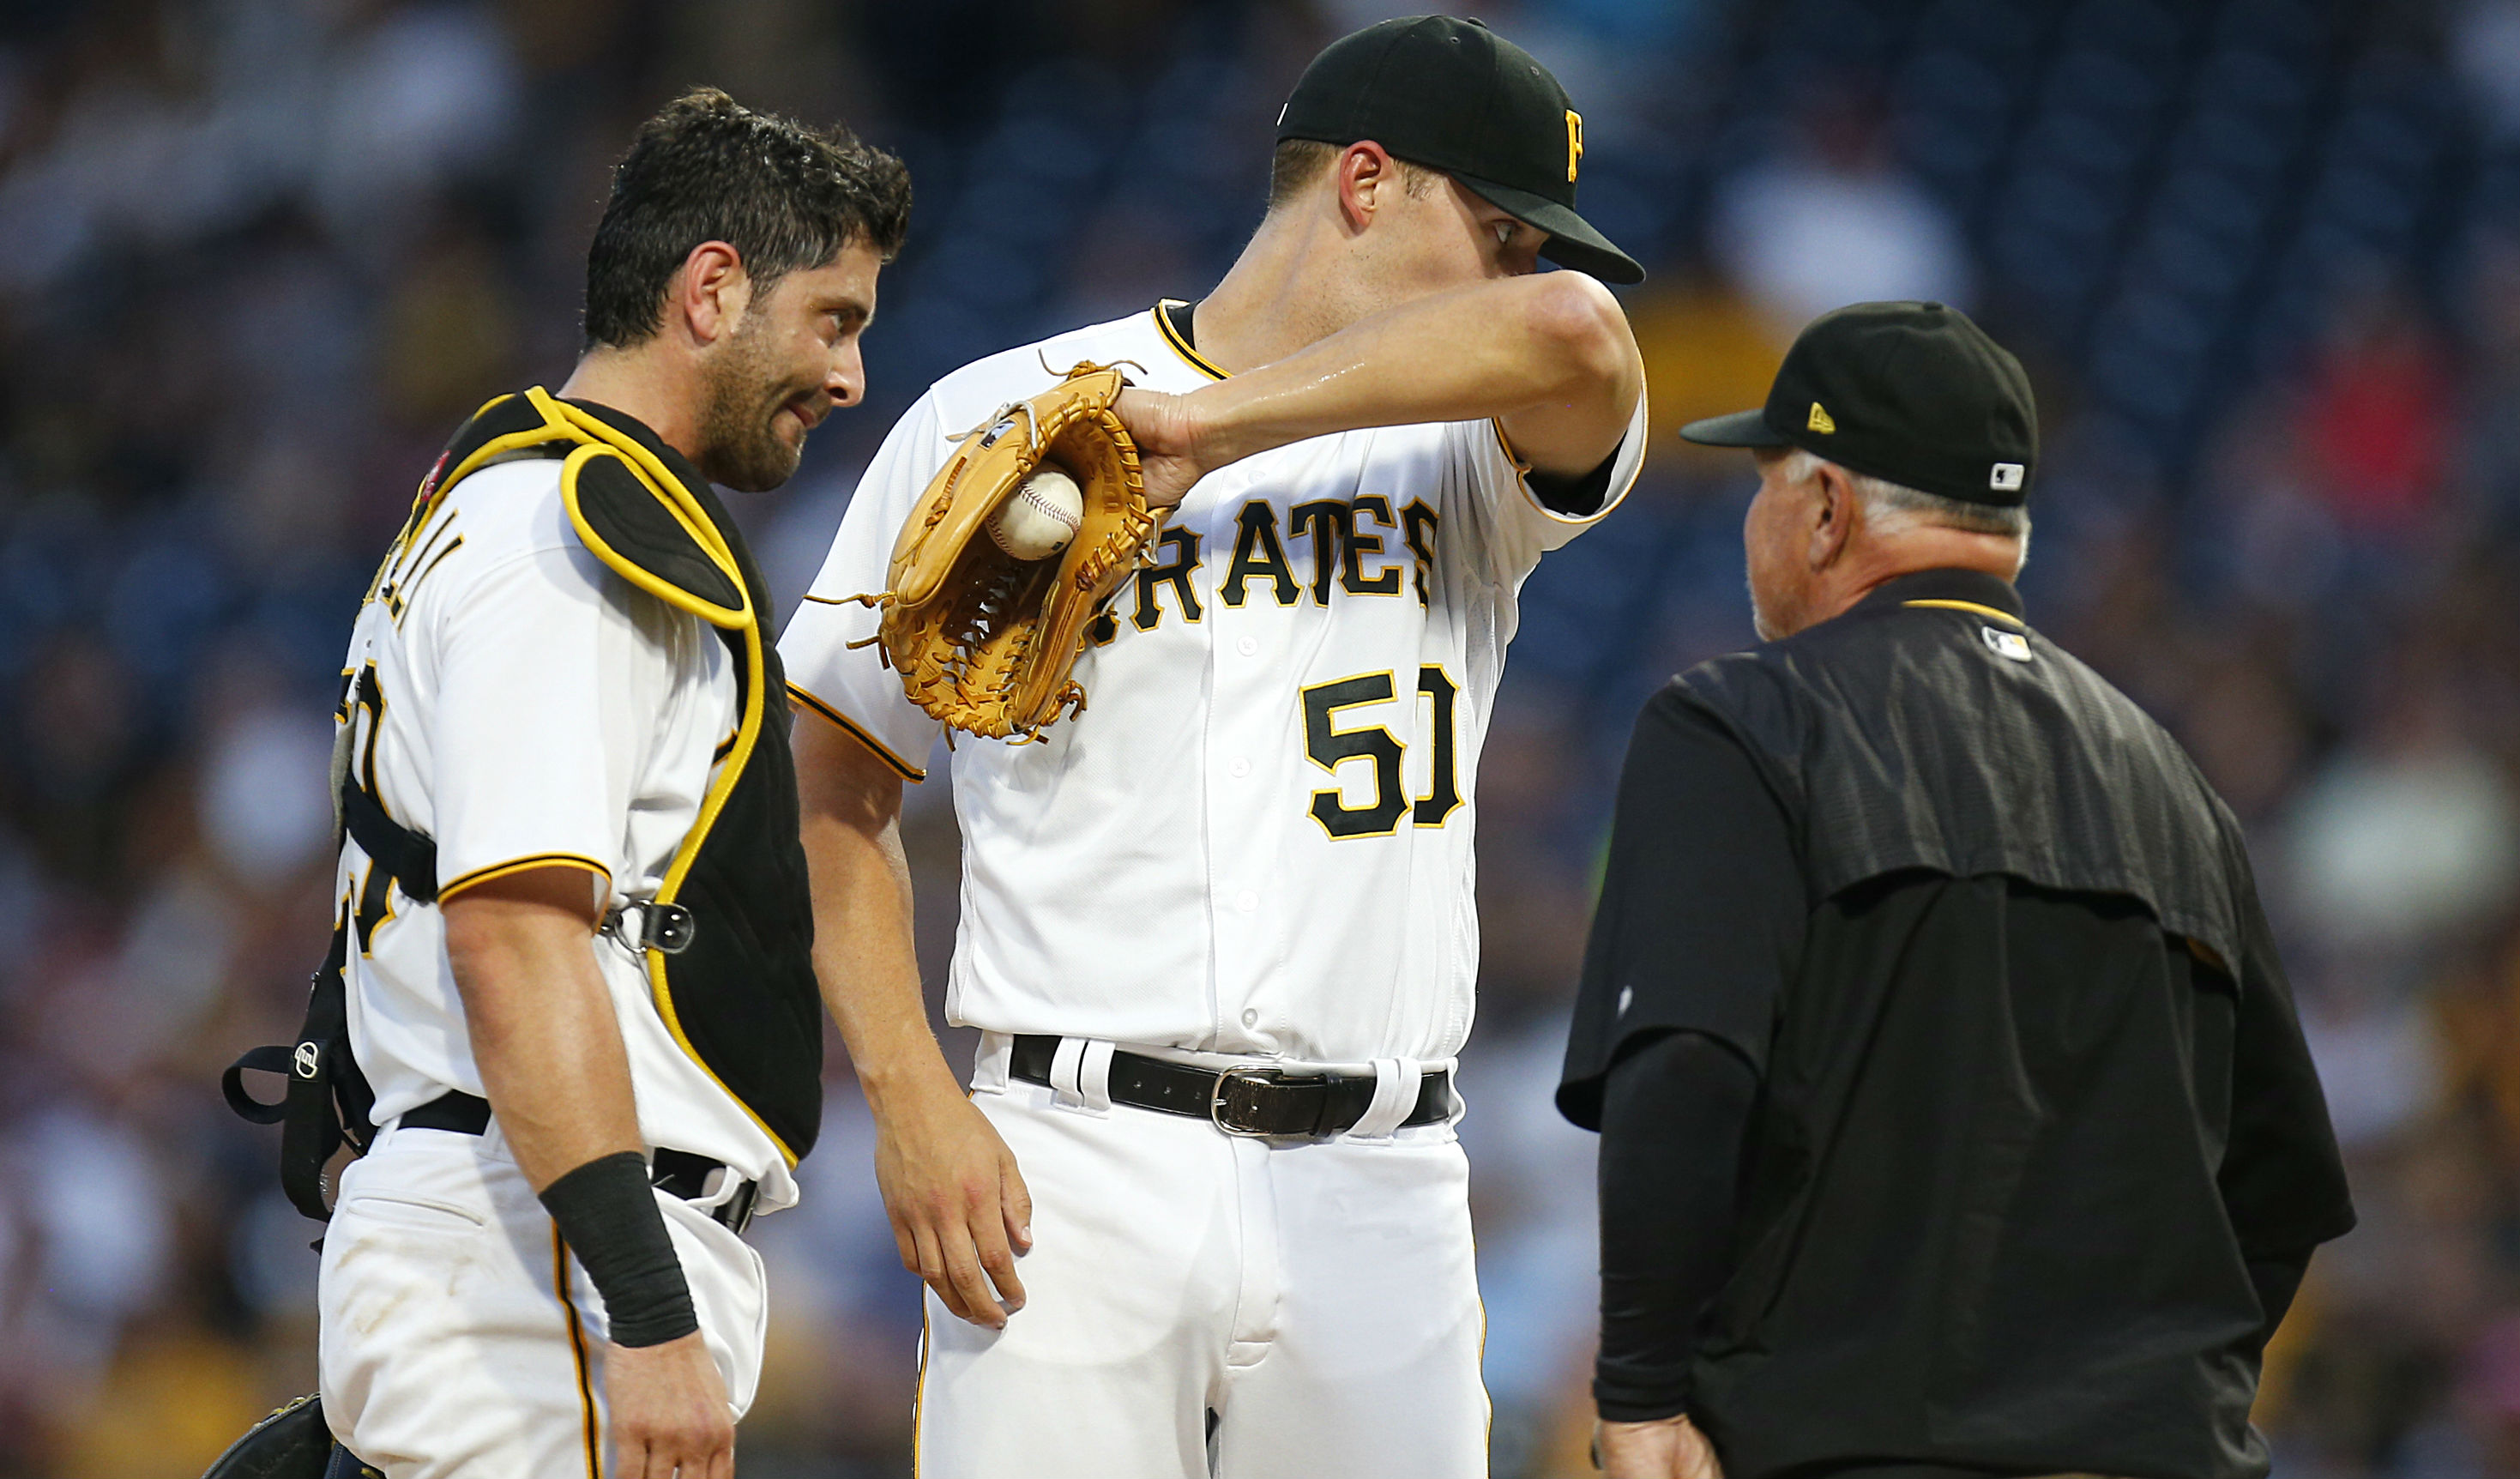 Jameson Taillon injury update: Pirates pitcher undergoes operation, now facing Tommy John surgery